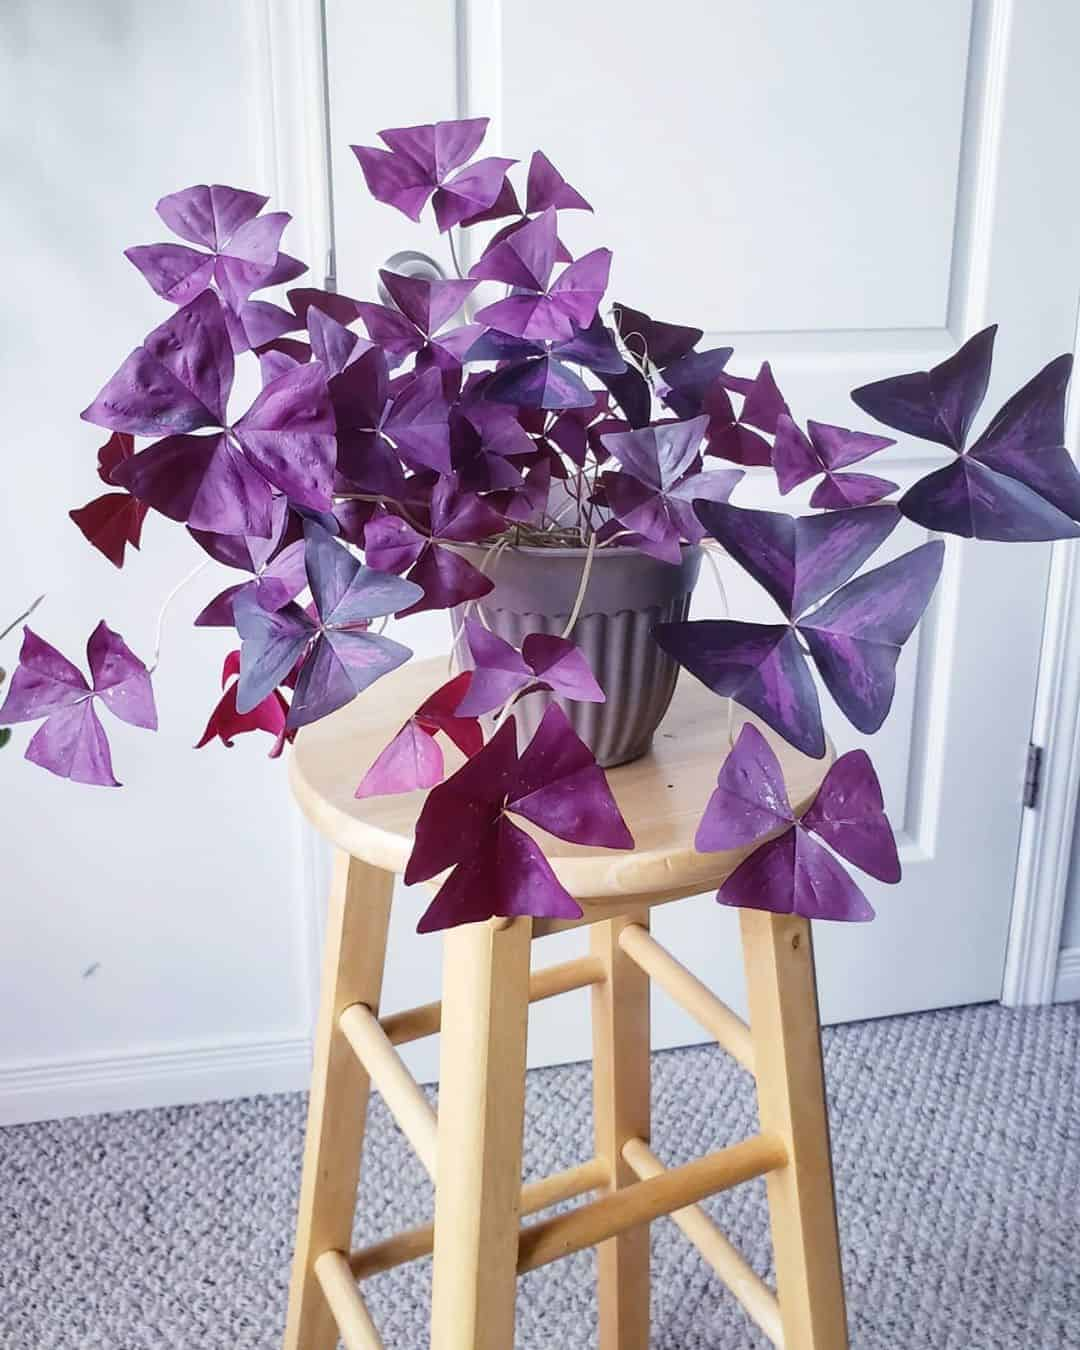 Oxalis Triangularis in a pot on a wooden chair